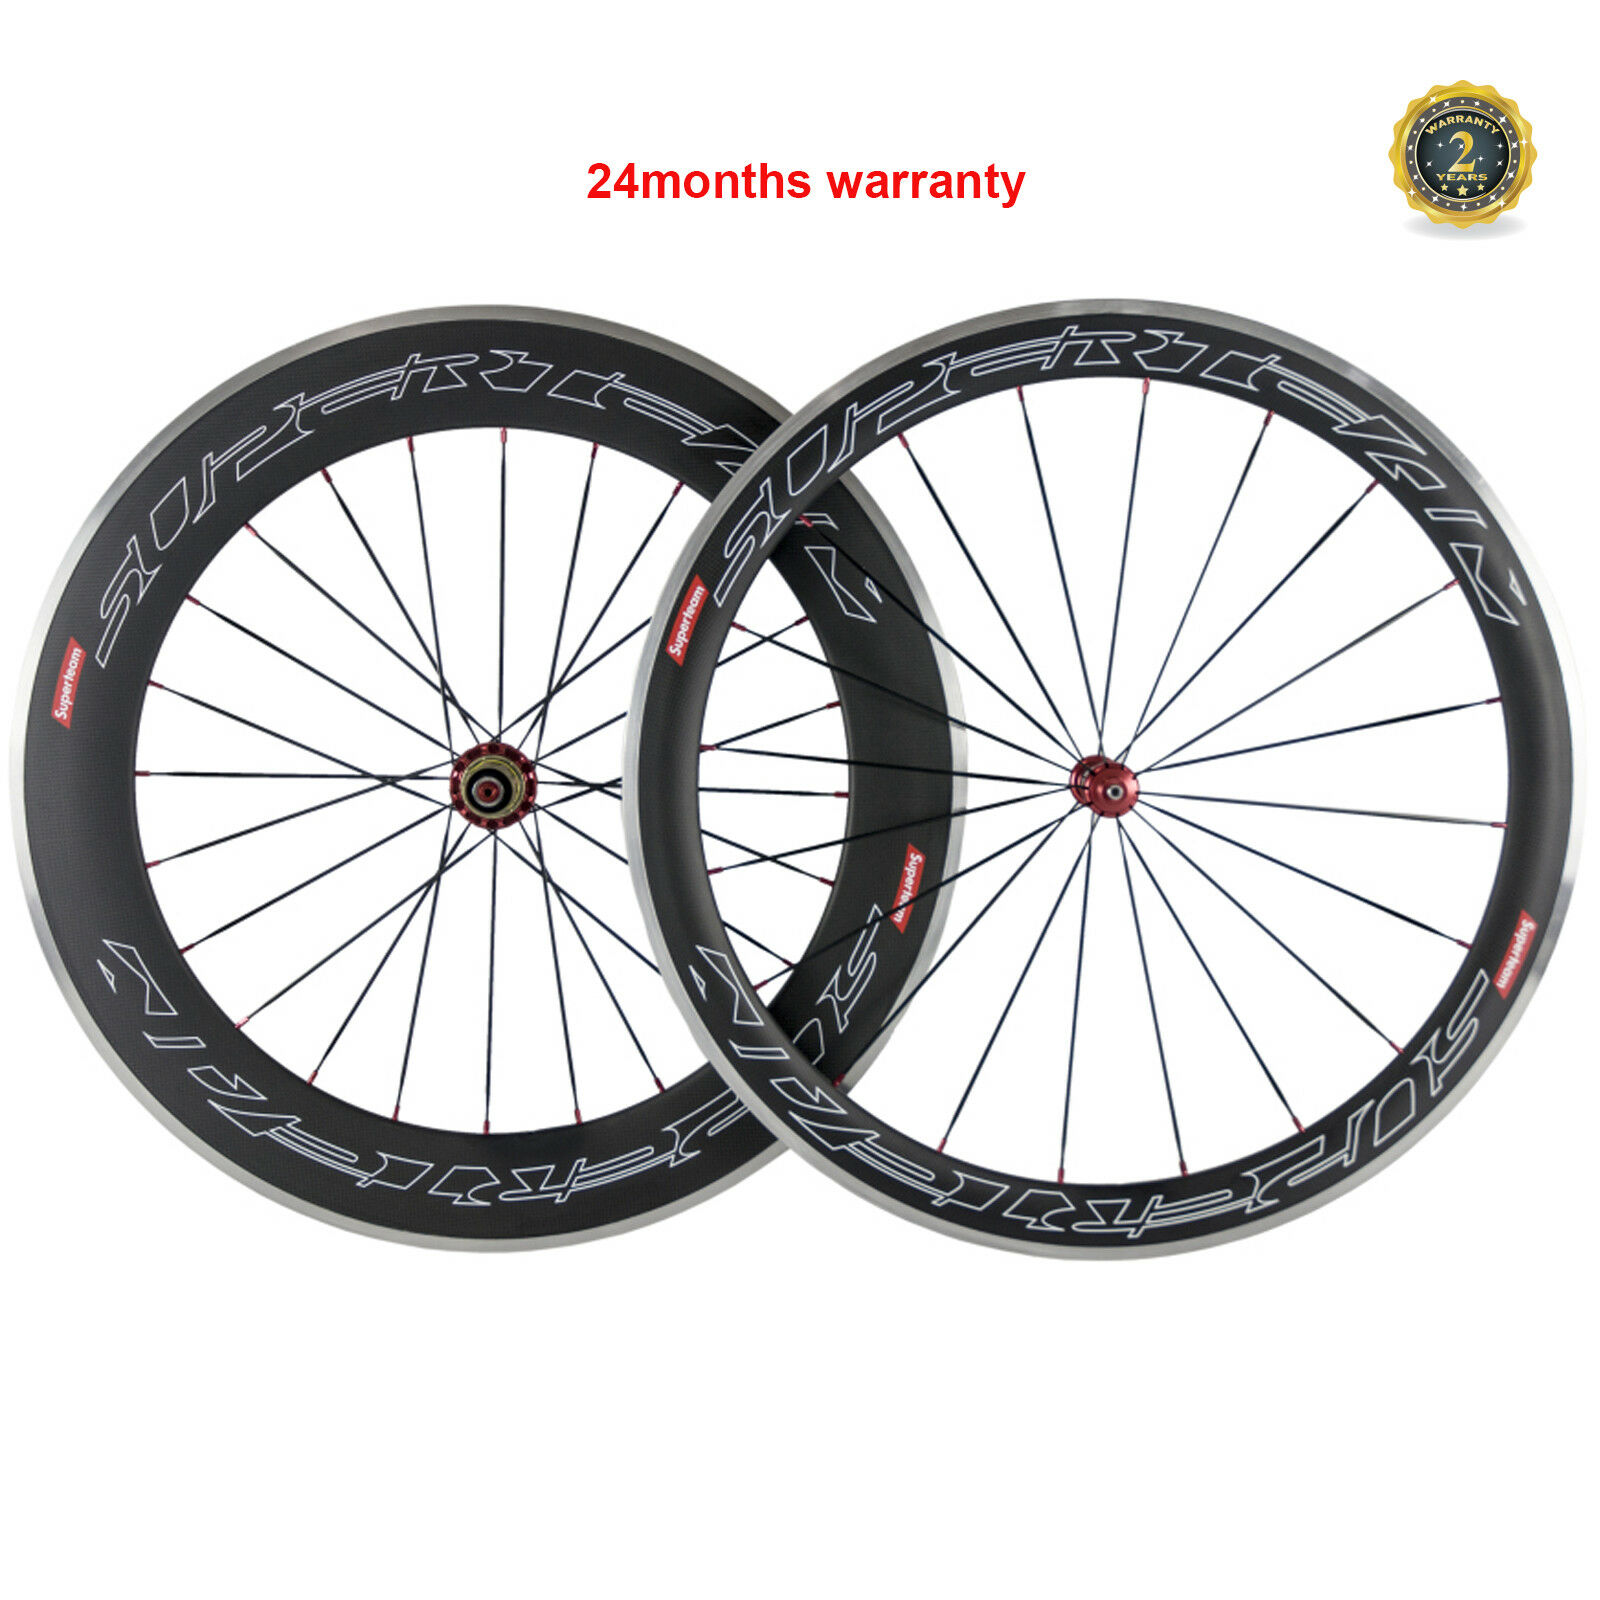 SUPERTEAM Carbon Wheels Biycle Front 50 Rear 80mm Clincher Wheelset  Alloy Brake  be in great demand